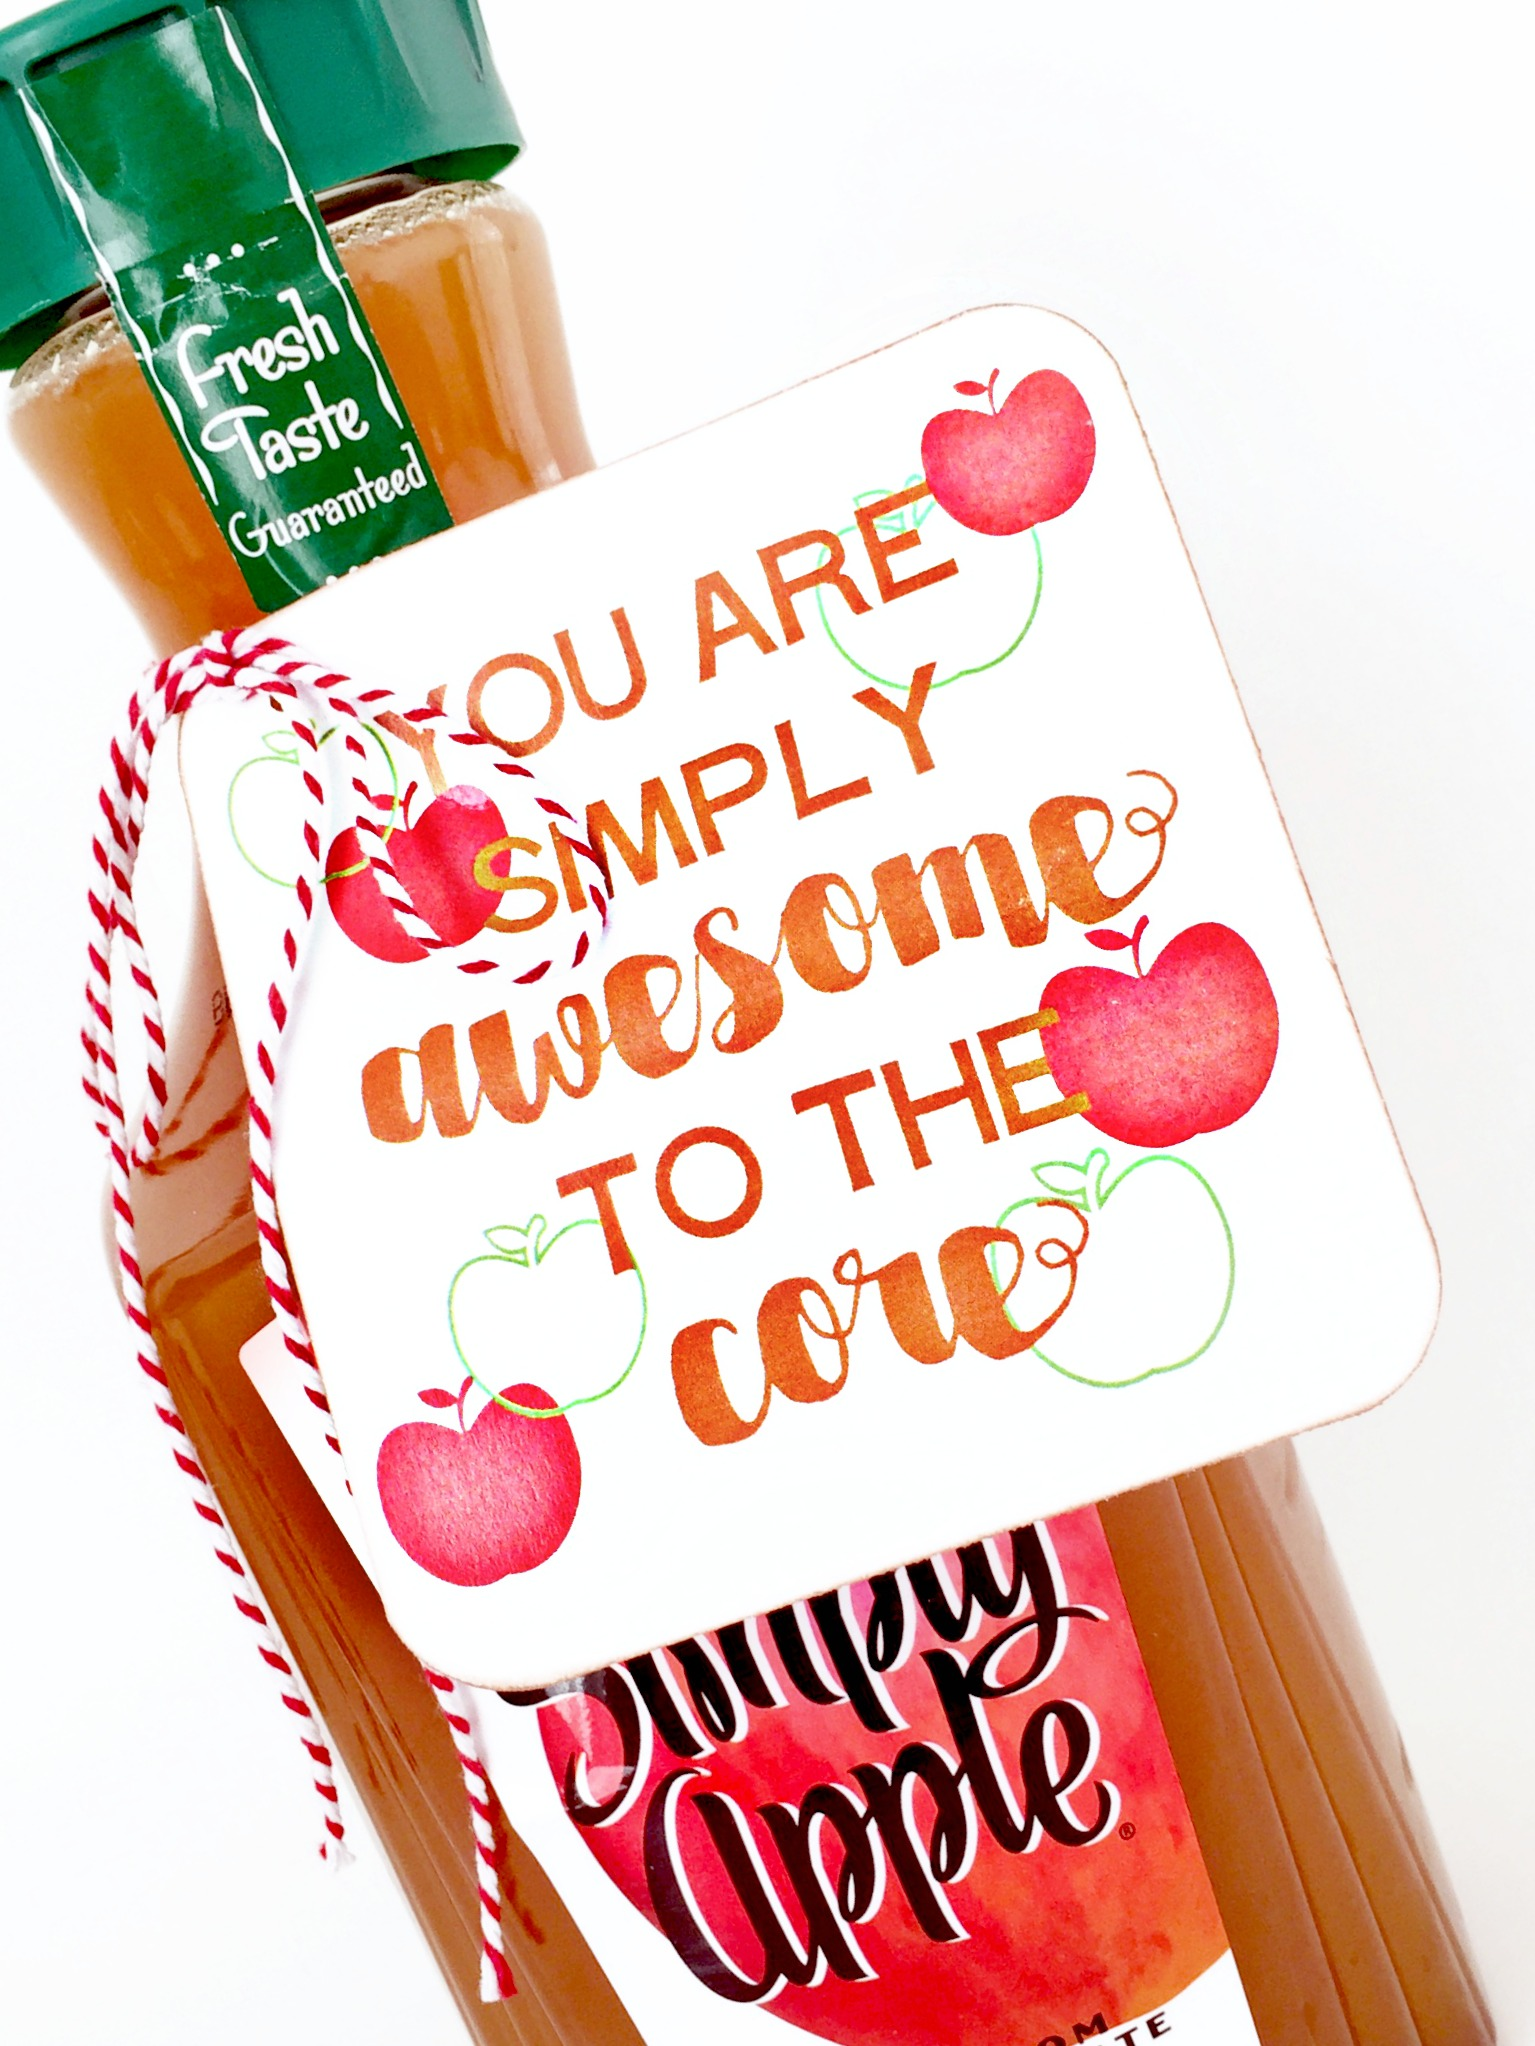 Celebrate the harvest season and back to school with this free print and cut awesome to the core gift tag. It's perfect for any apple gift.